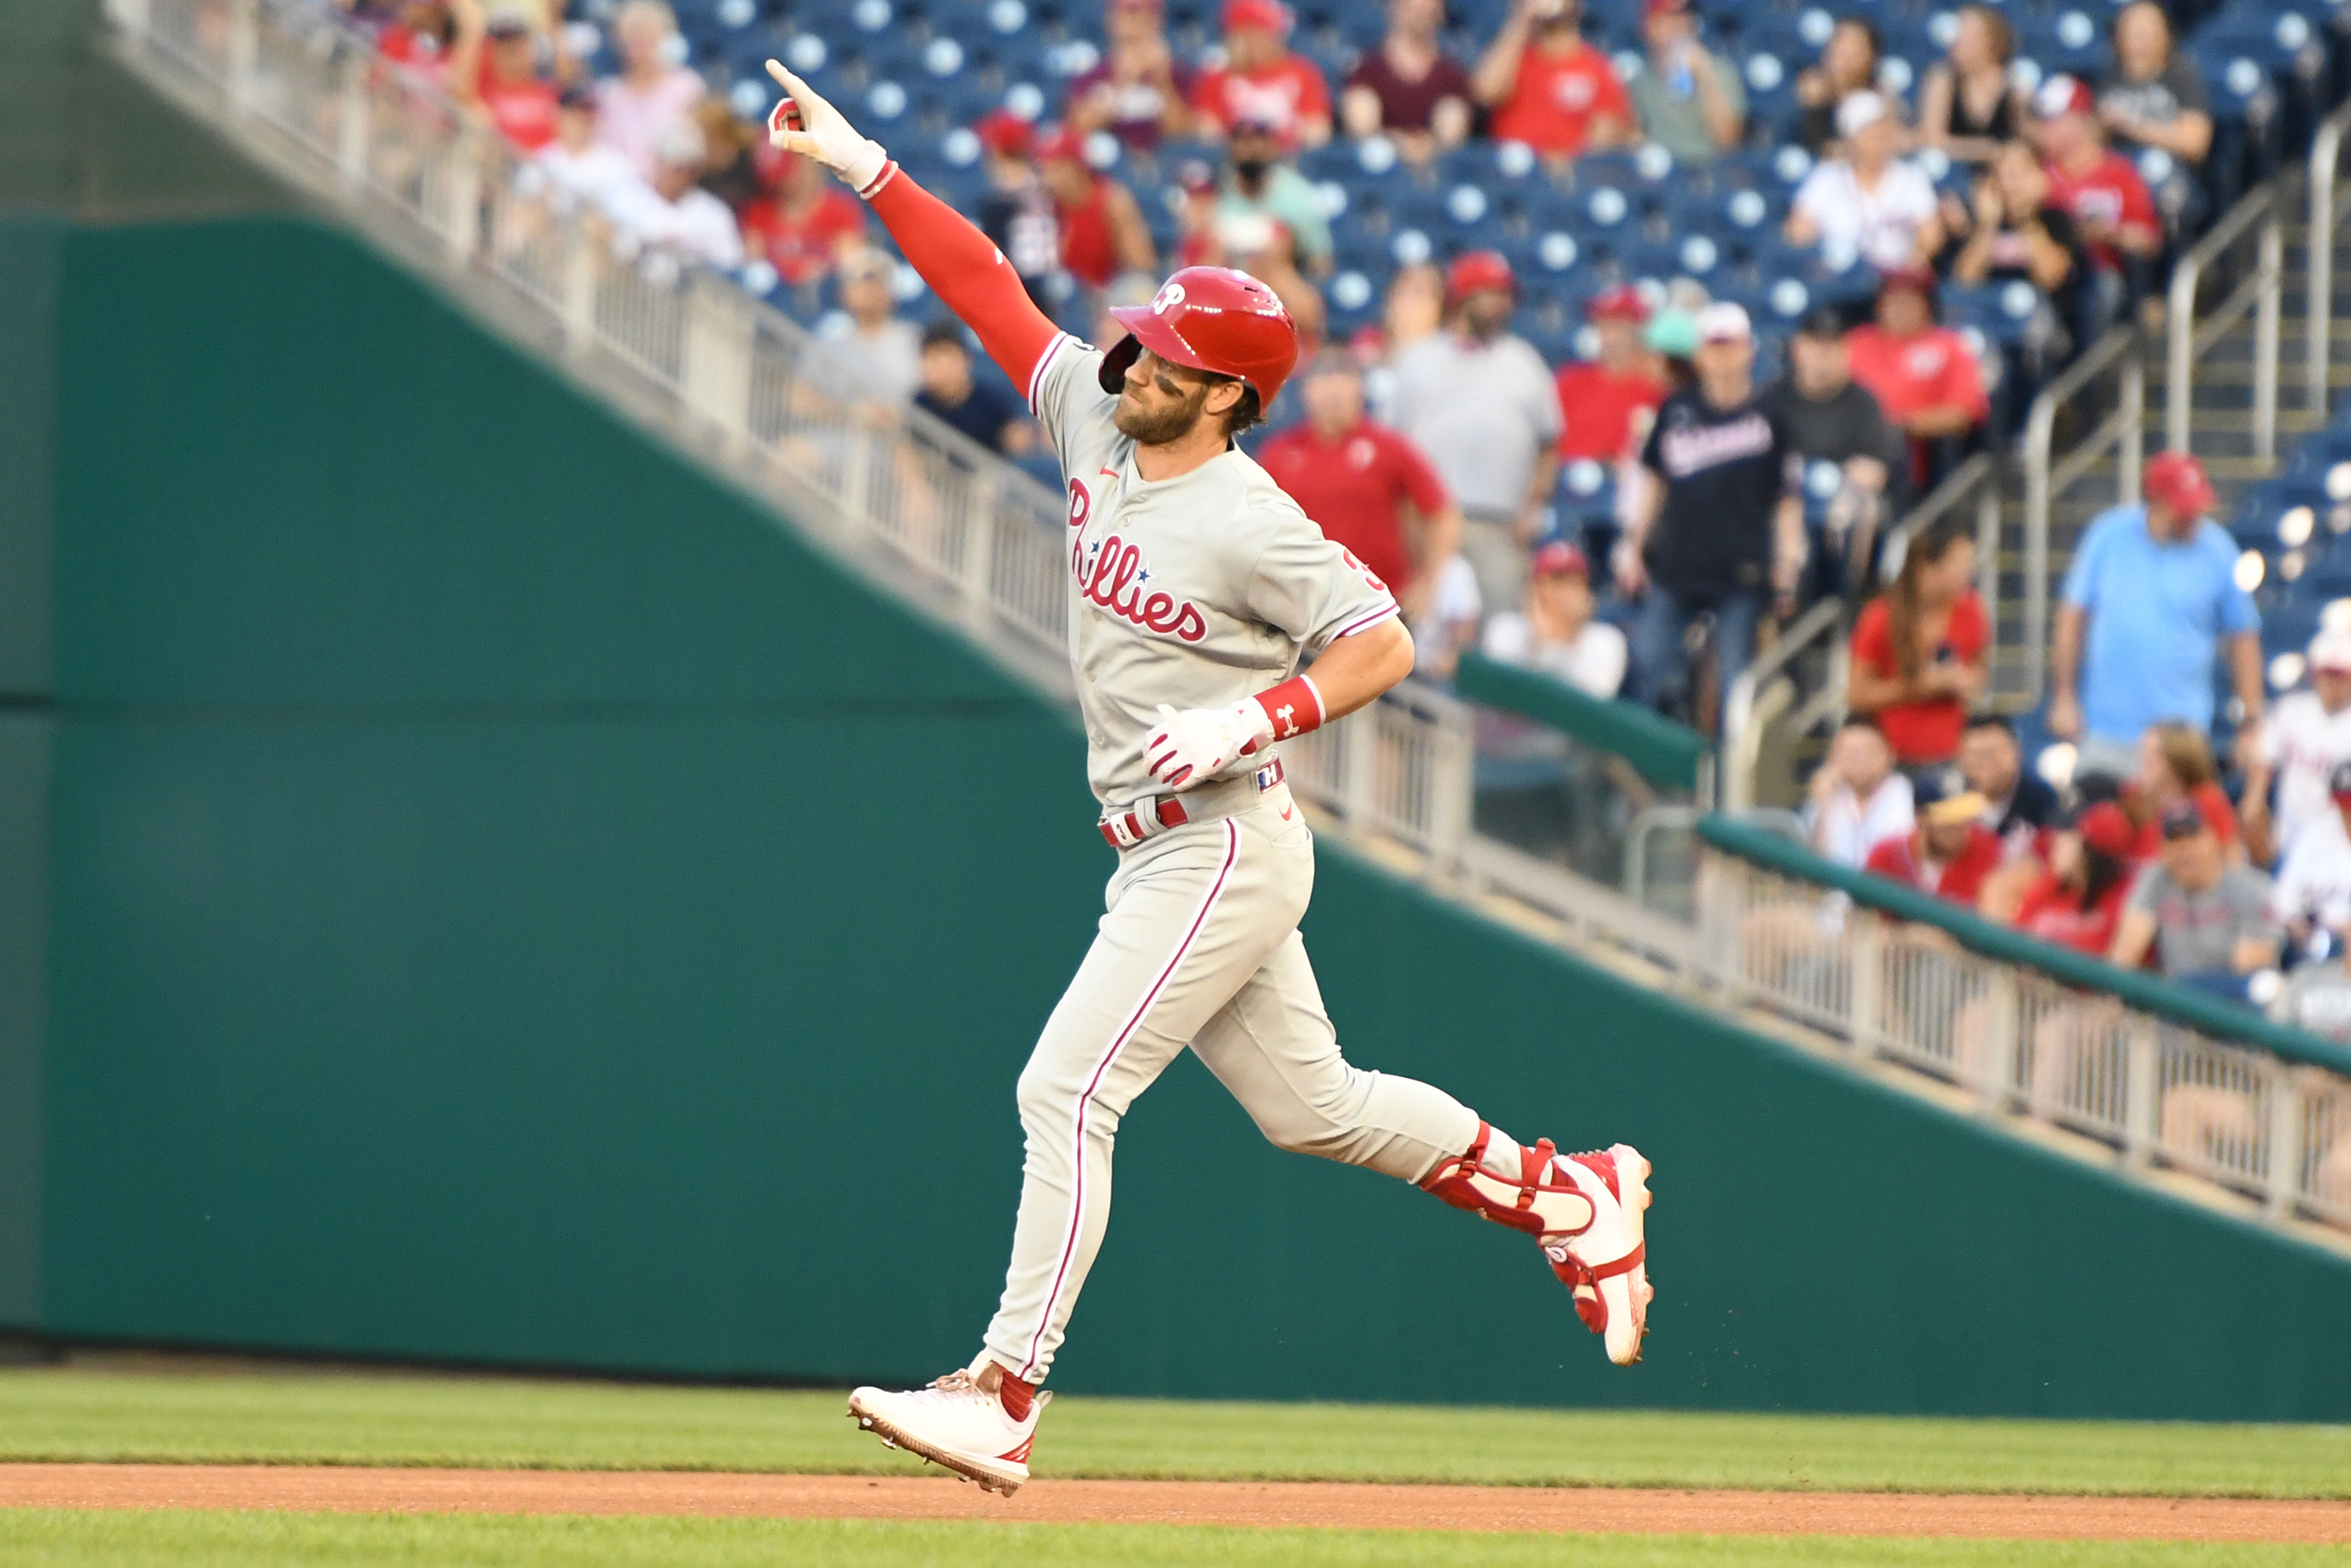 Bryce Harper #3 of the Philadelphia Phillies celebrates a two run home run in the first inning during a baseball game against the Washington Nationals at Nationals Park on August 30, 2021 in Washington, DC